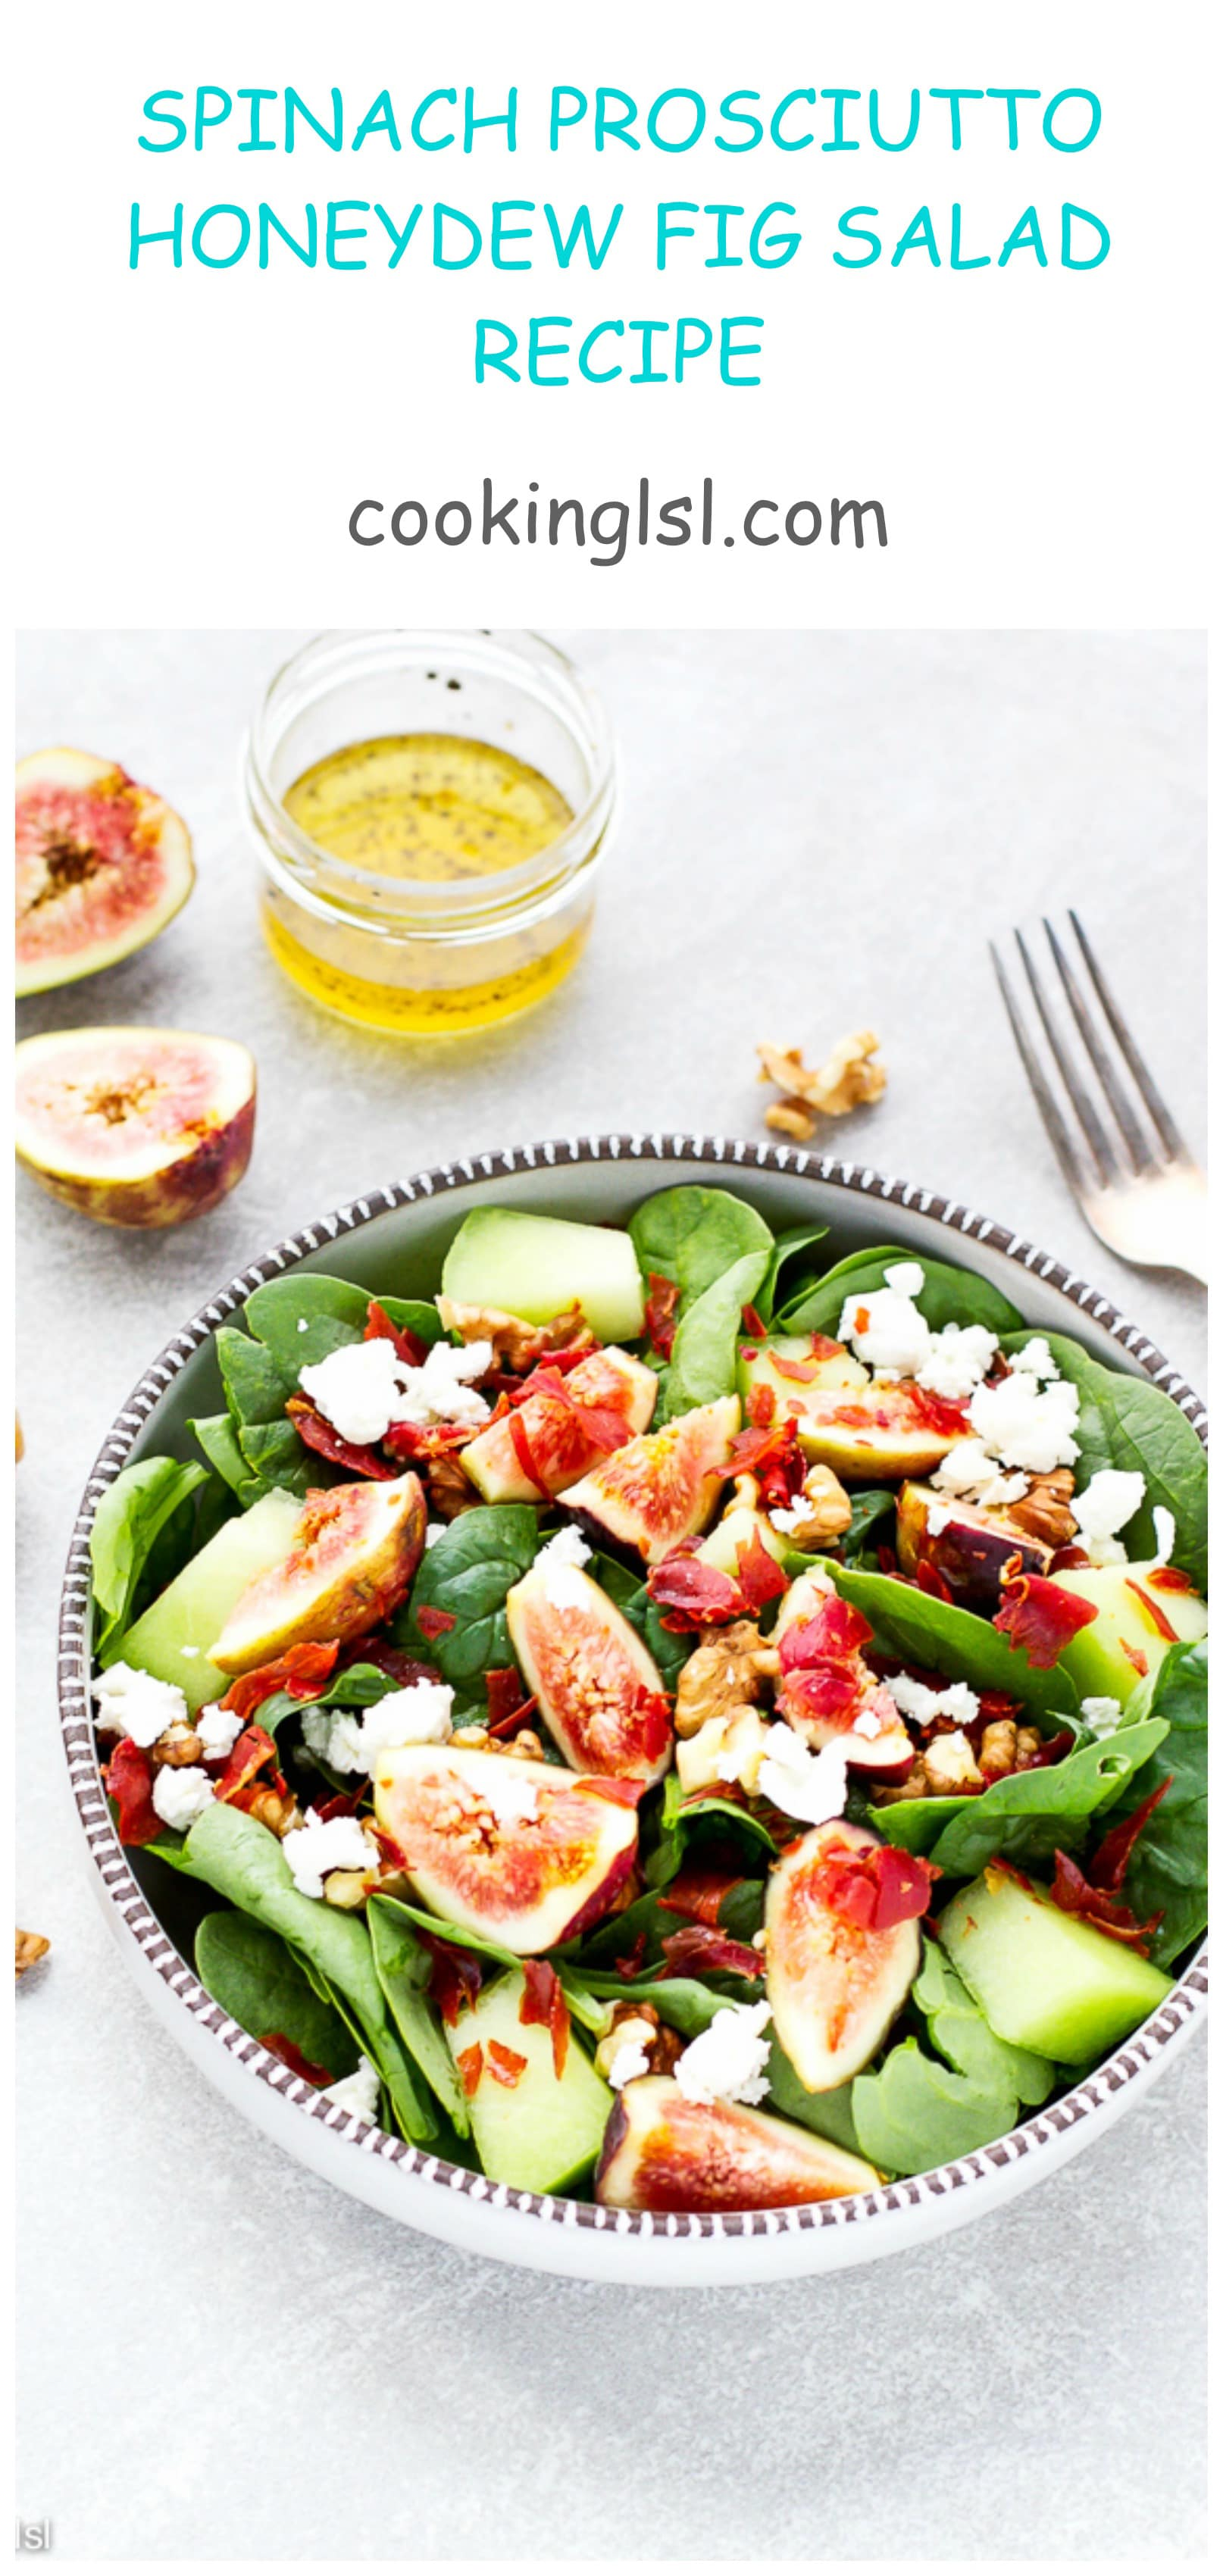 Spinach Prosciutto Honeydew Fig Salad